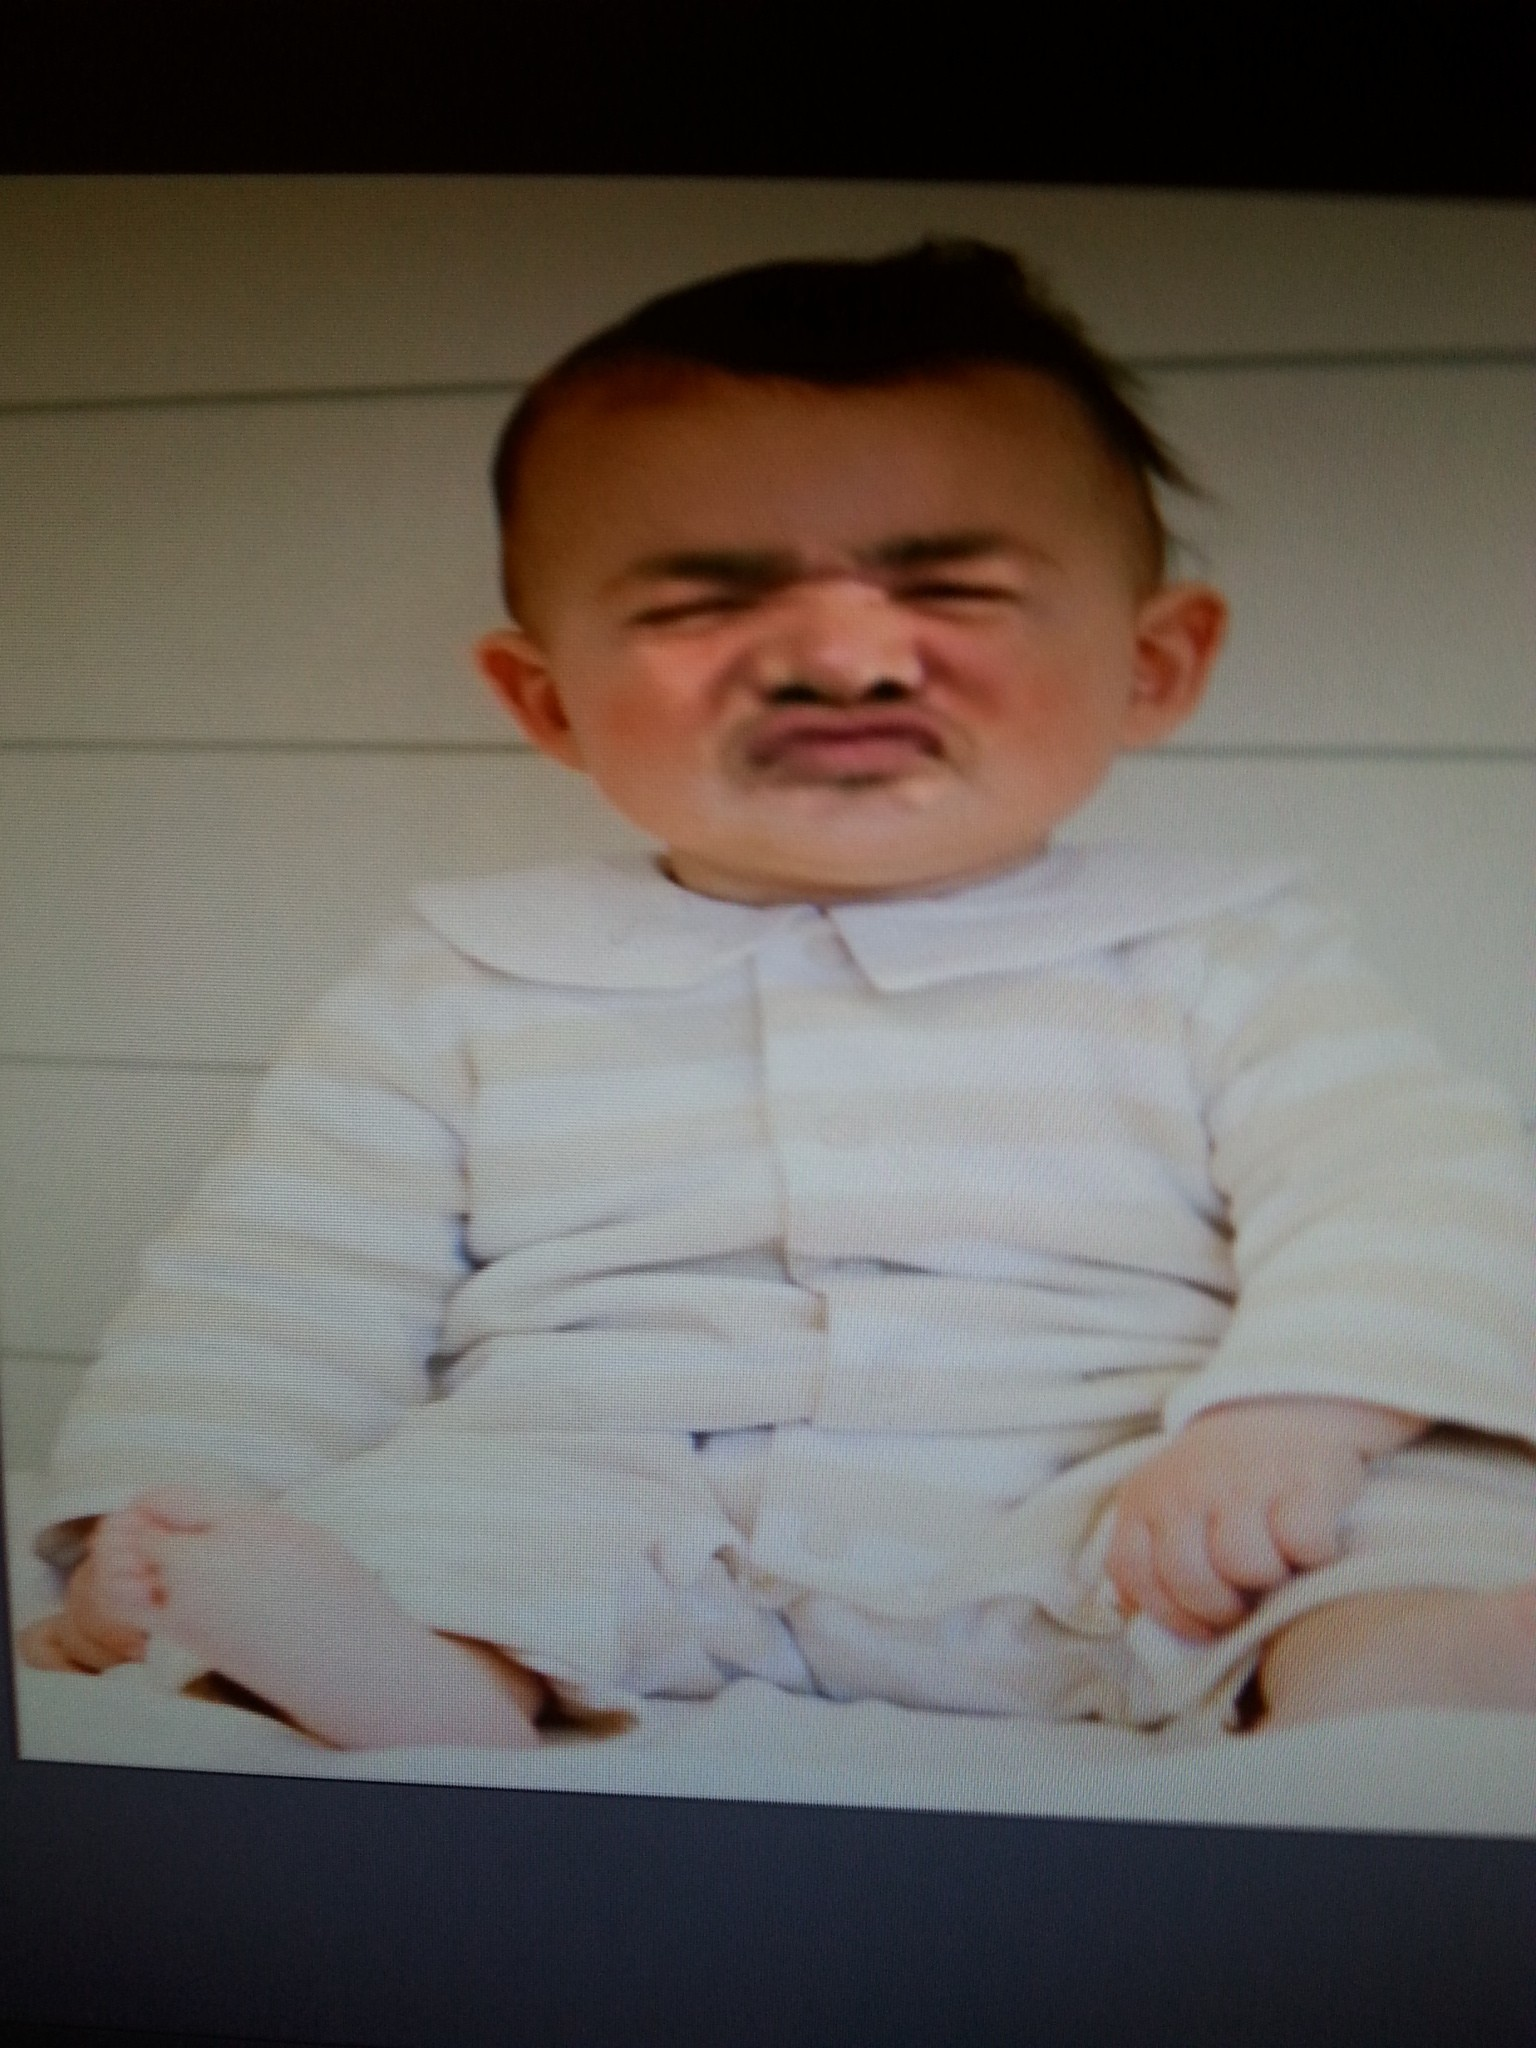 Found my baby pic.....